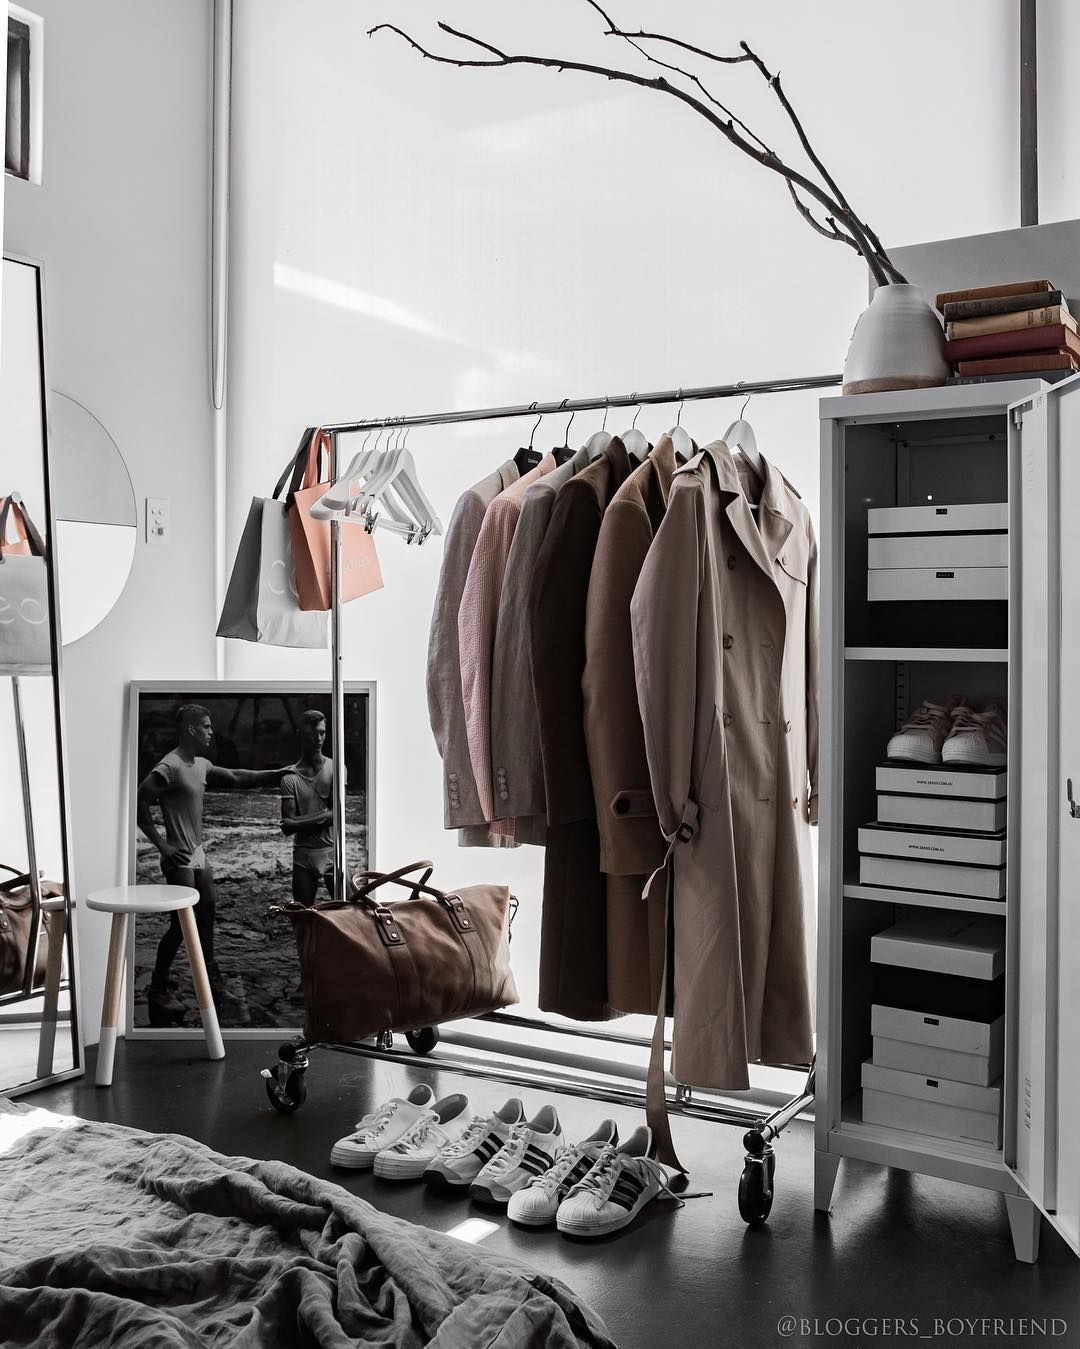 Http Instagram Bloggers Boyfriend Wardrobe Organising Mens Bedroom Organizing